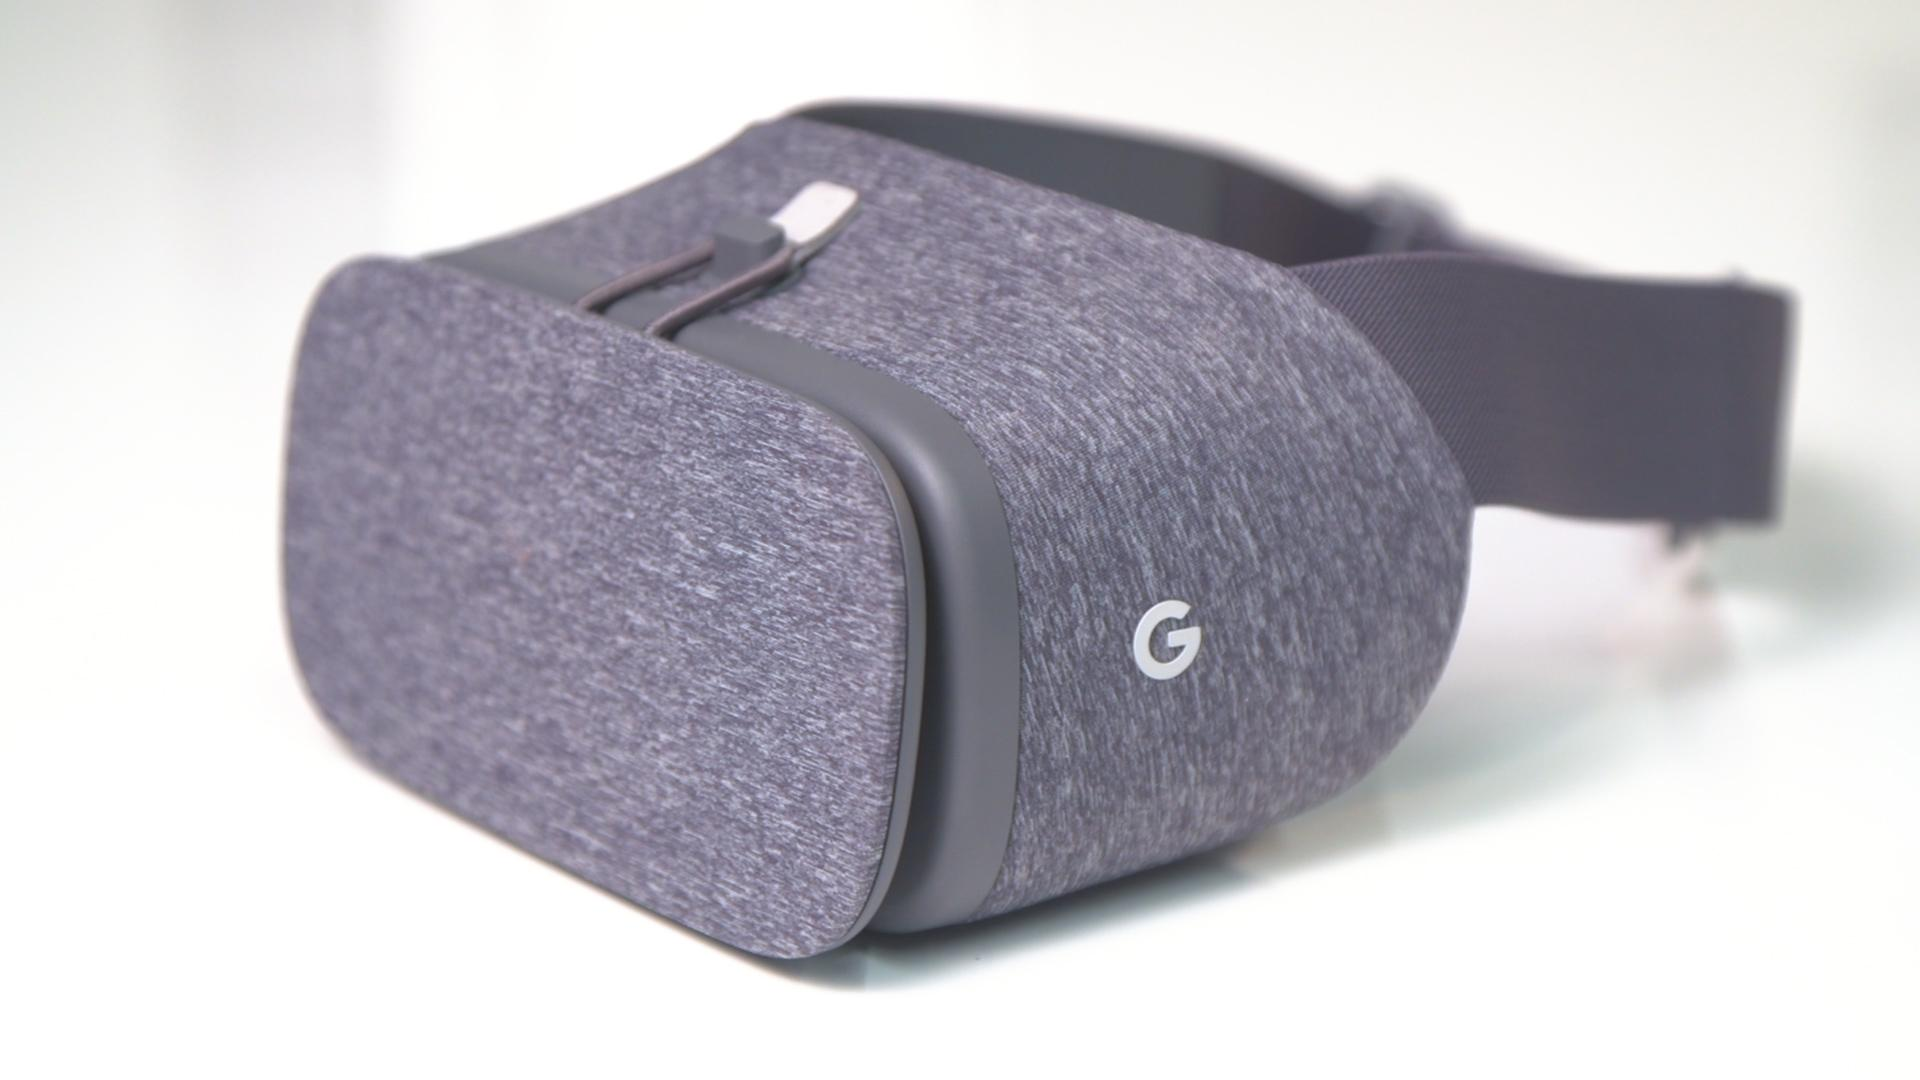 Google's Daydream View VR headset review